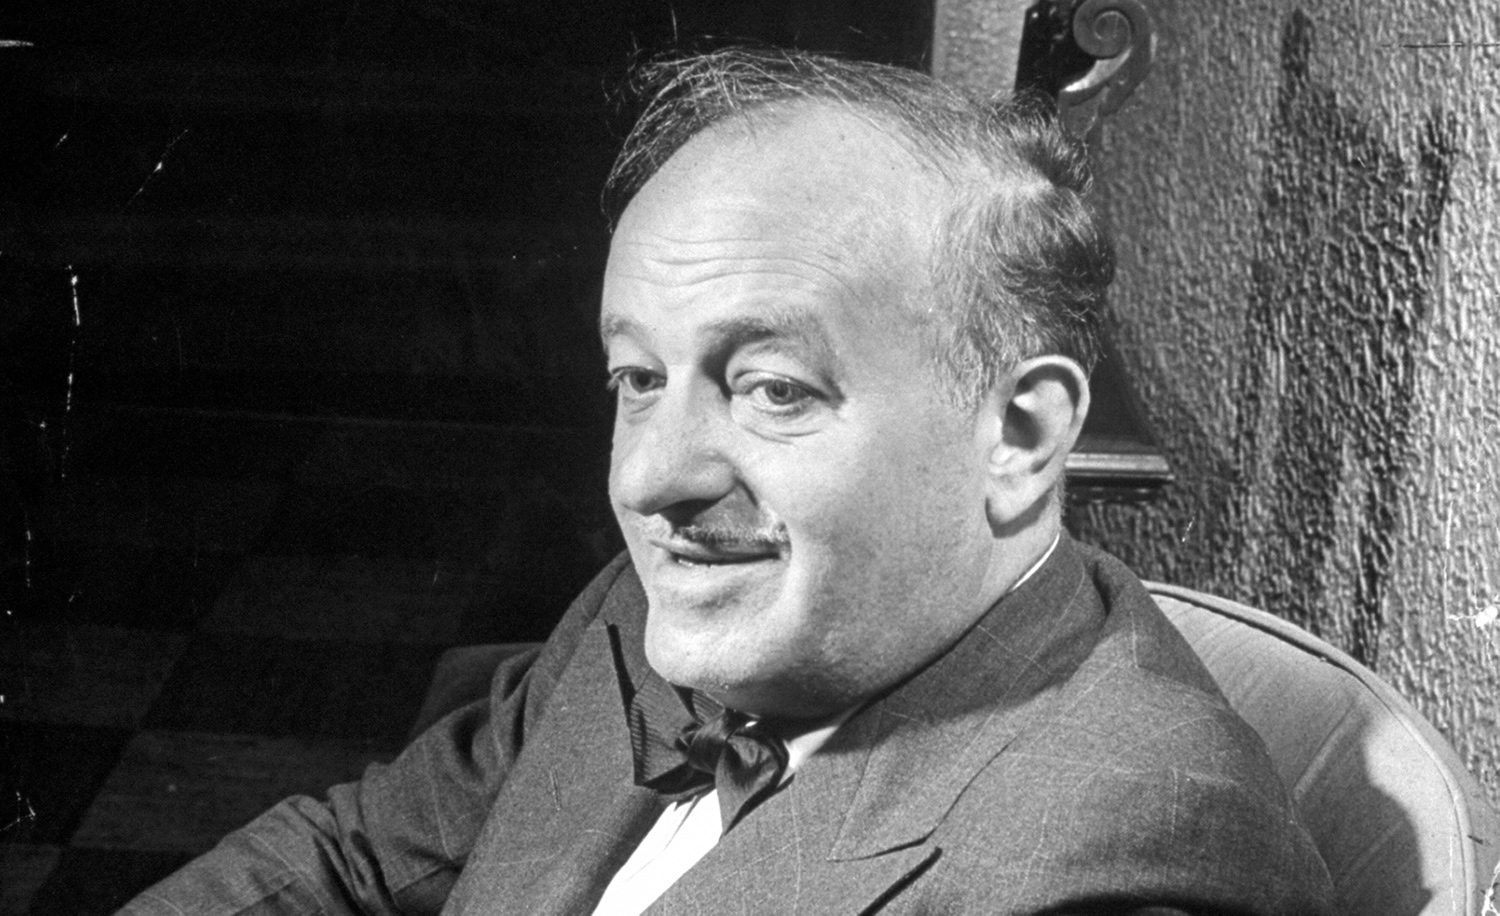 Ben Hecht in 1946. Eileen Darby/The LIFE Images Collection via Getty Images.